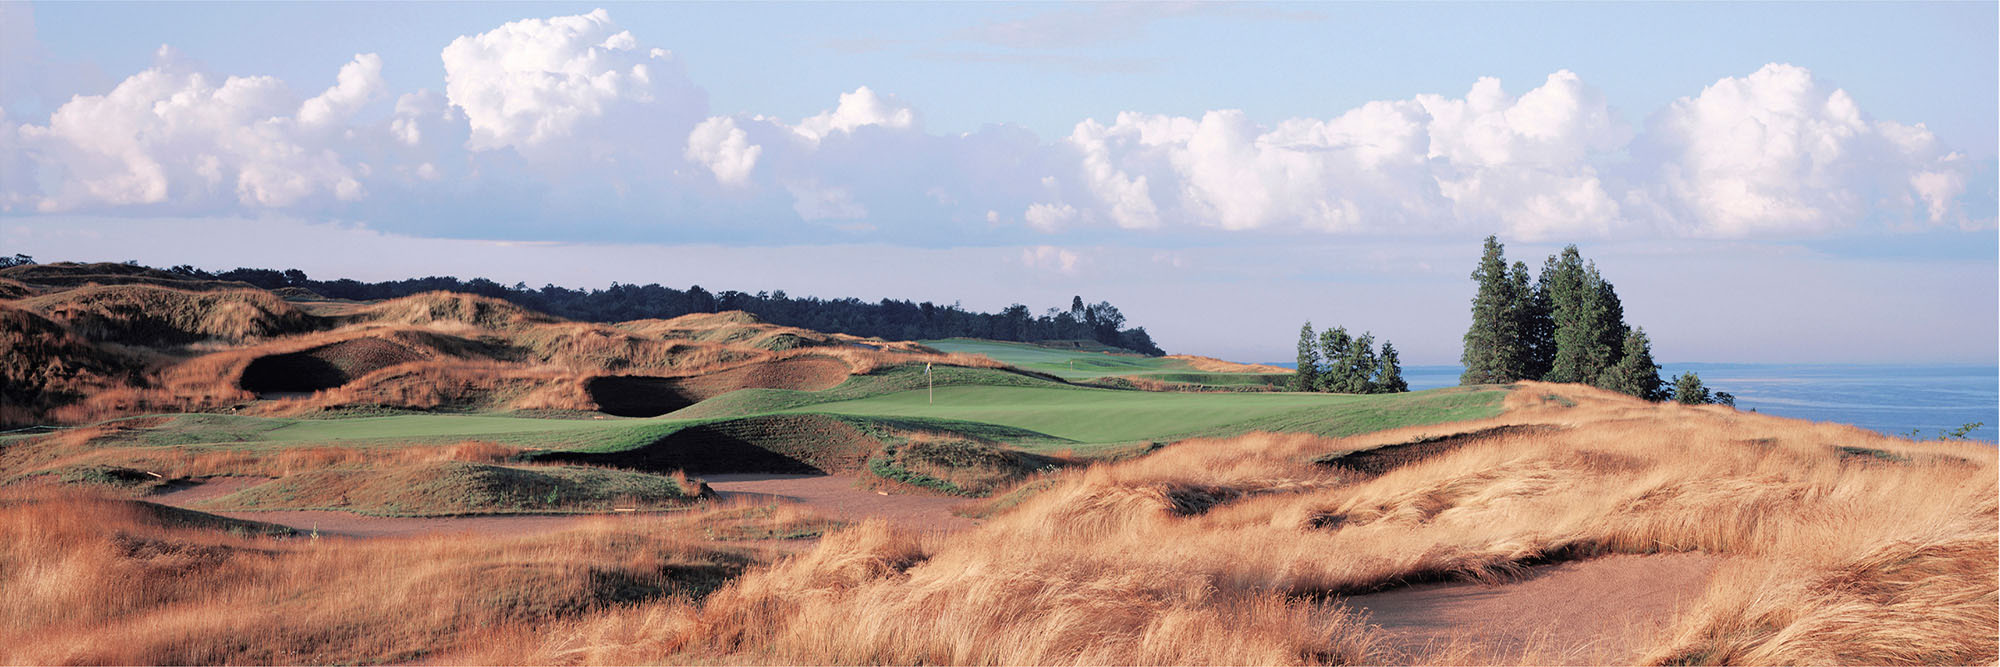 Golf Course Image - Arcadia Bluffs No. 5